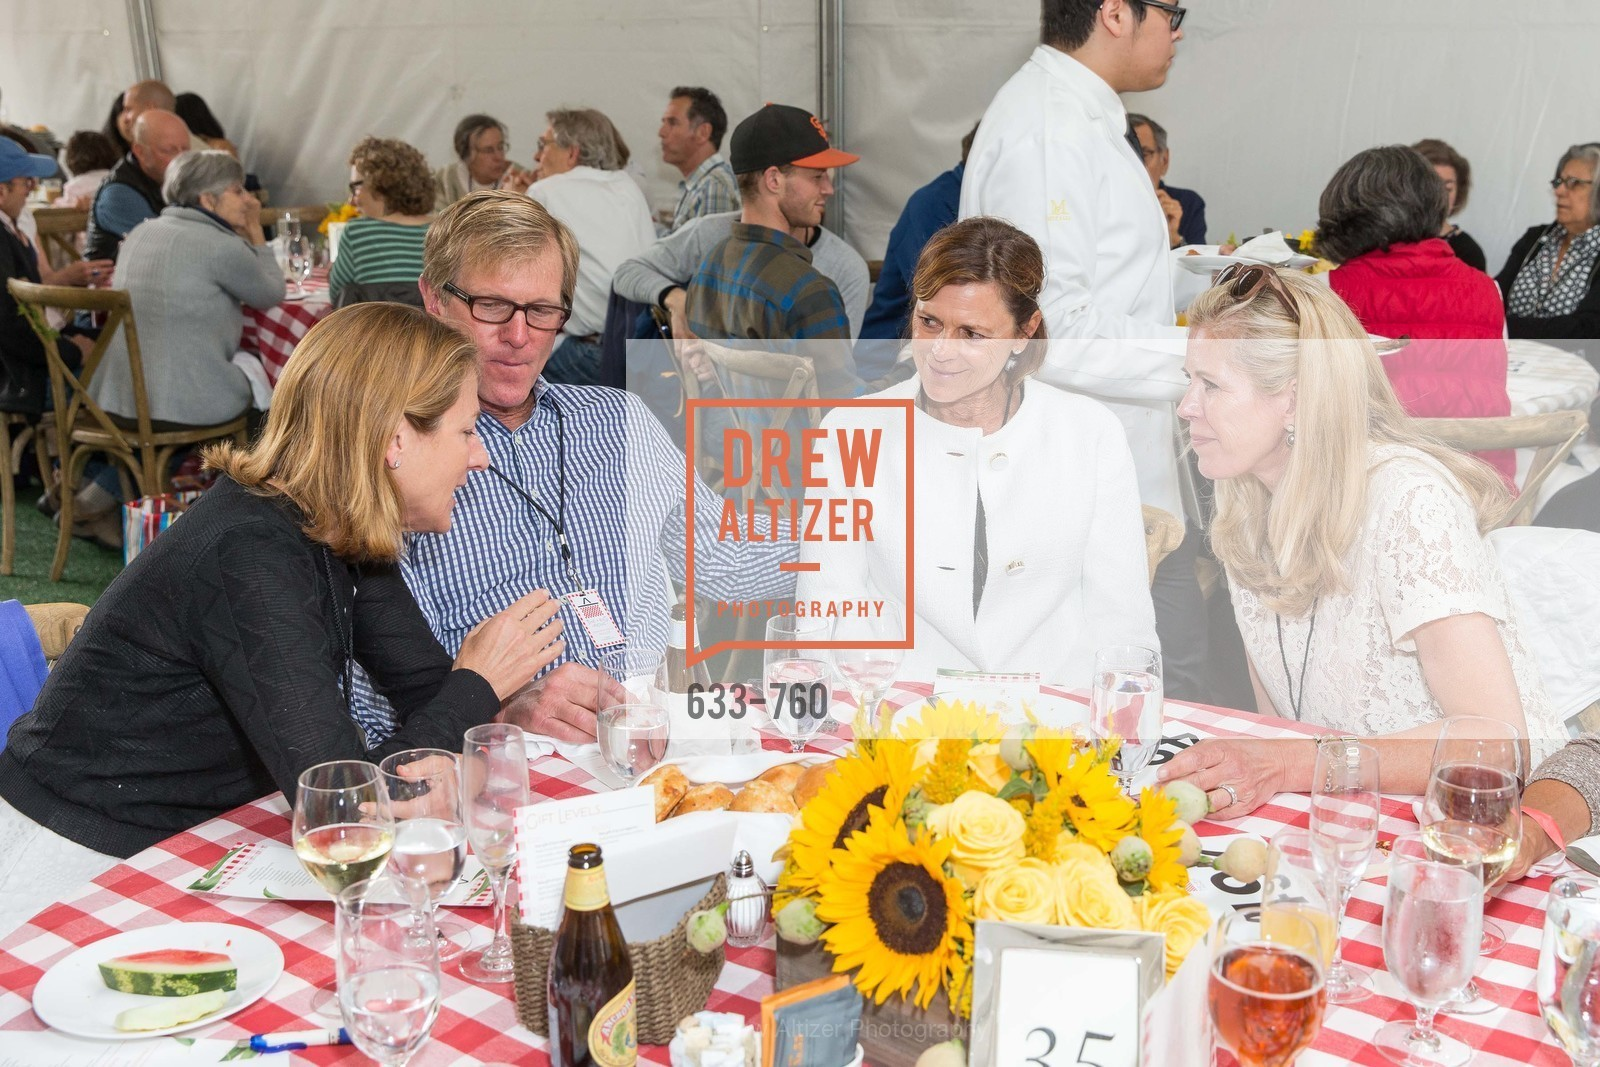 Laura Hazlett, Jack Troedson, Lisa Troedson, Shawn Byers, The Big Picnic! A Benefit & Concert for STERN GROVE FESTIVAL, US, June 14th, 2015,Drew Altizer, Drew Altizer Photography, full-service agency, private events, San Francisco photographer, photographer california